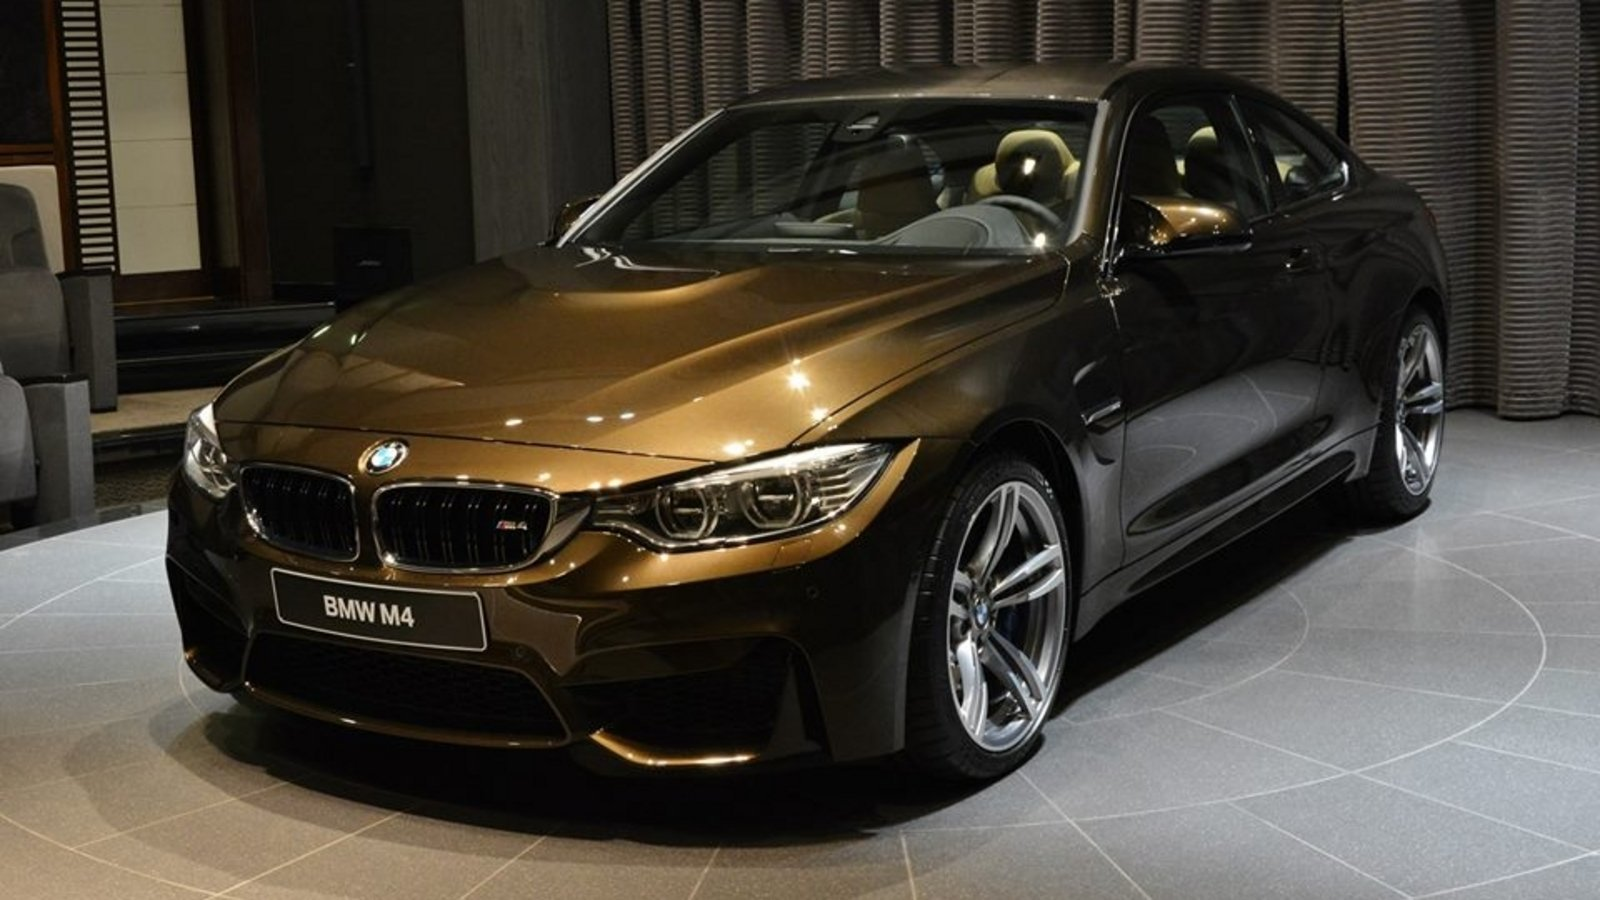 Bmw X1 2018 Colores >> 2015 BMW M4 Coupe Pyrite Brown Edition Review - Top Speed